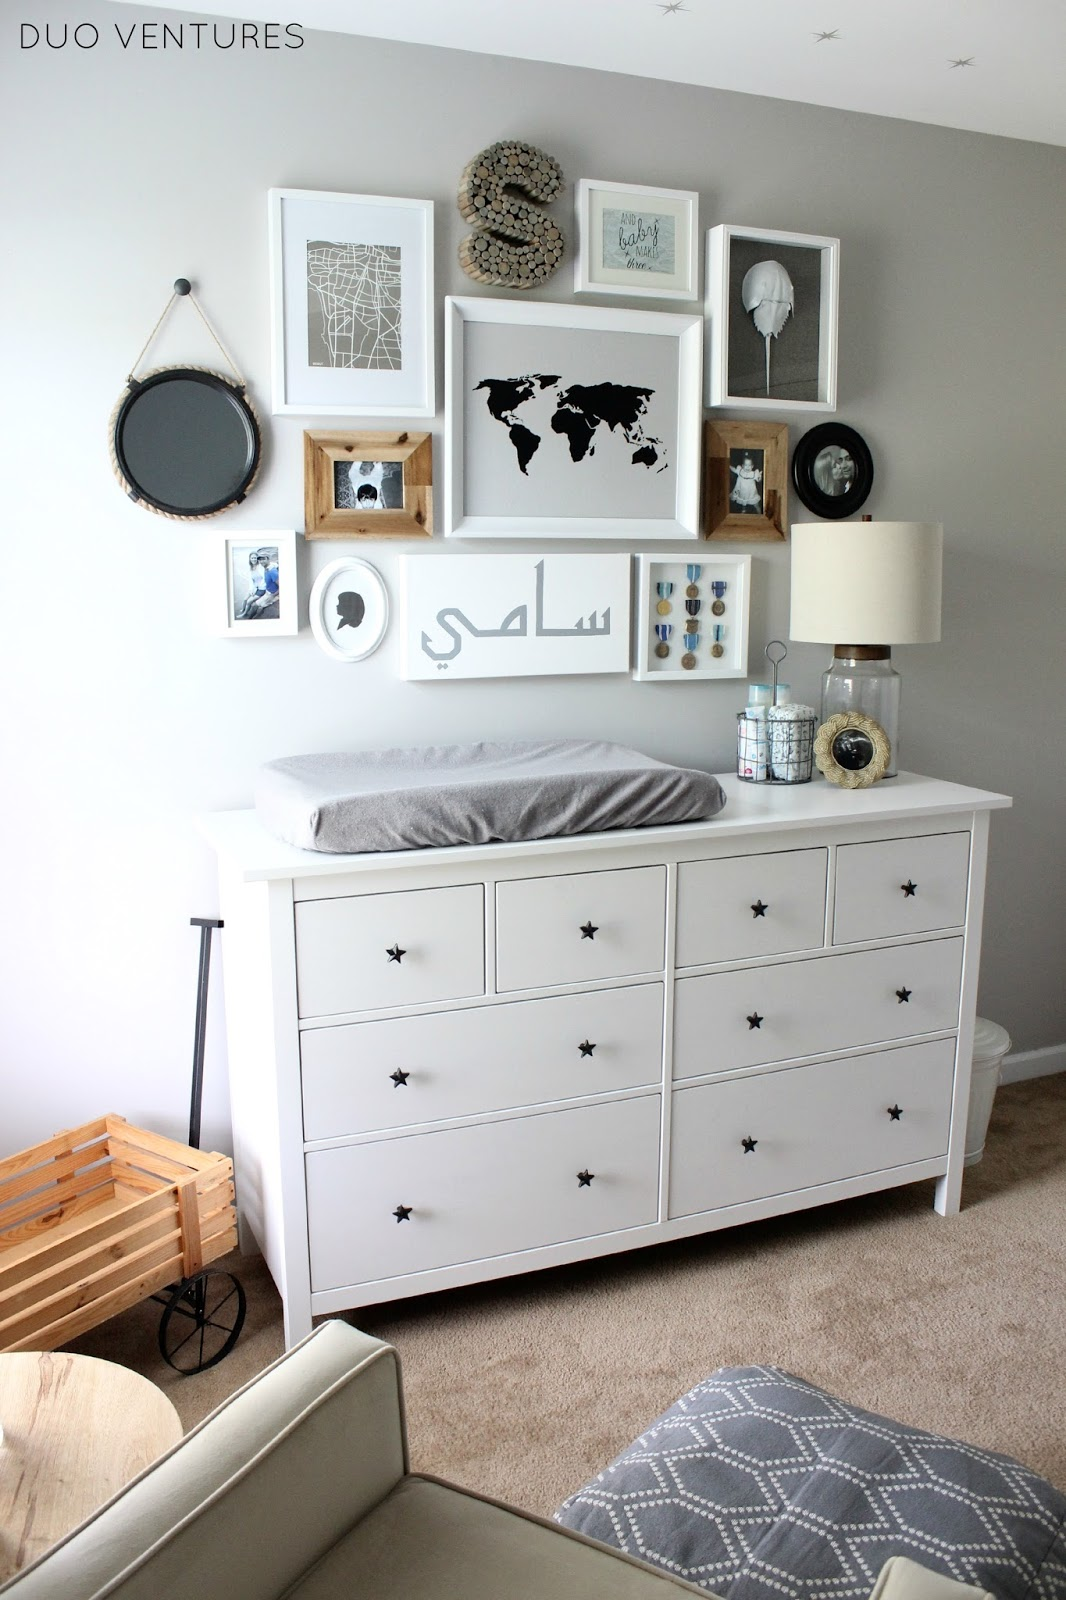 The Nursery  Custom IKEA Hemnes Dresser. Duo Ventures  The Nursery  Custom IKEA Hemnes Dresser